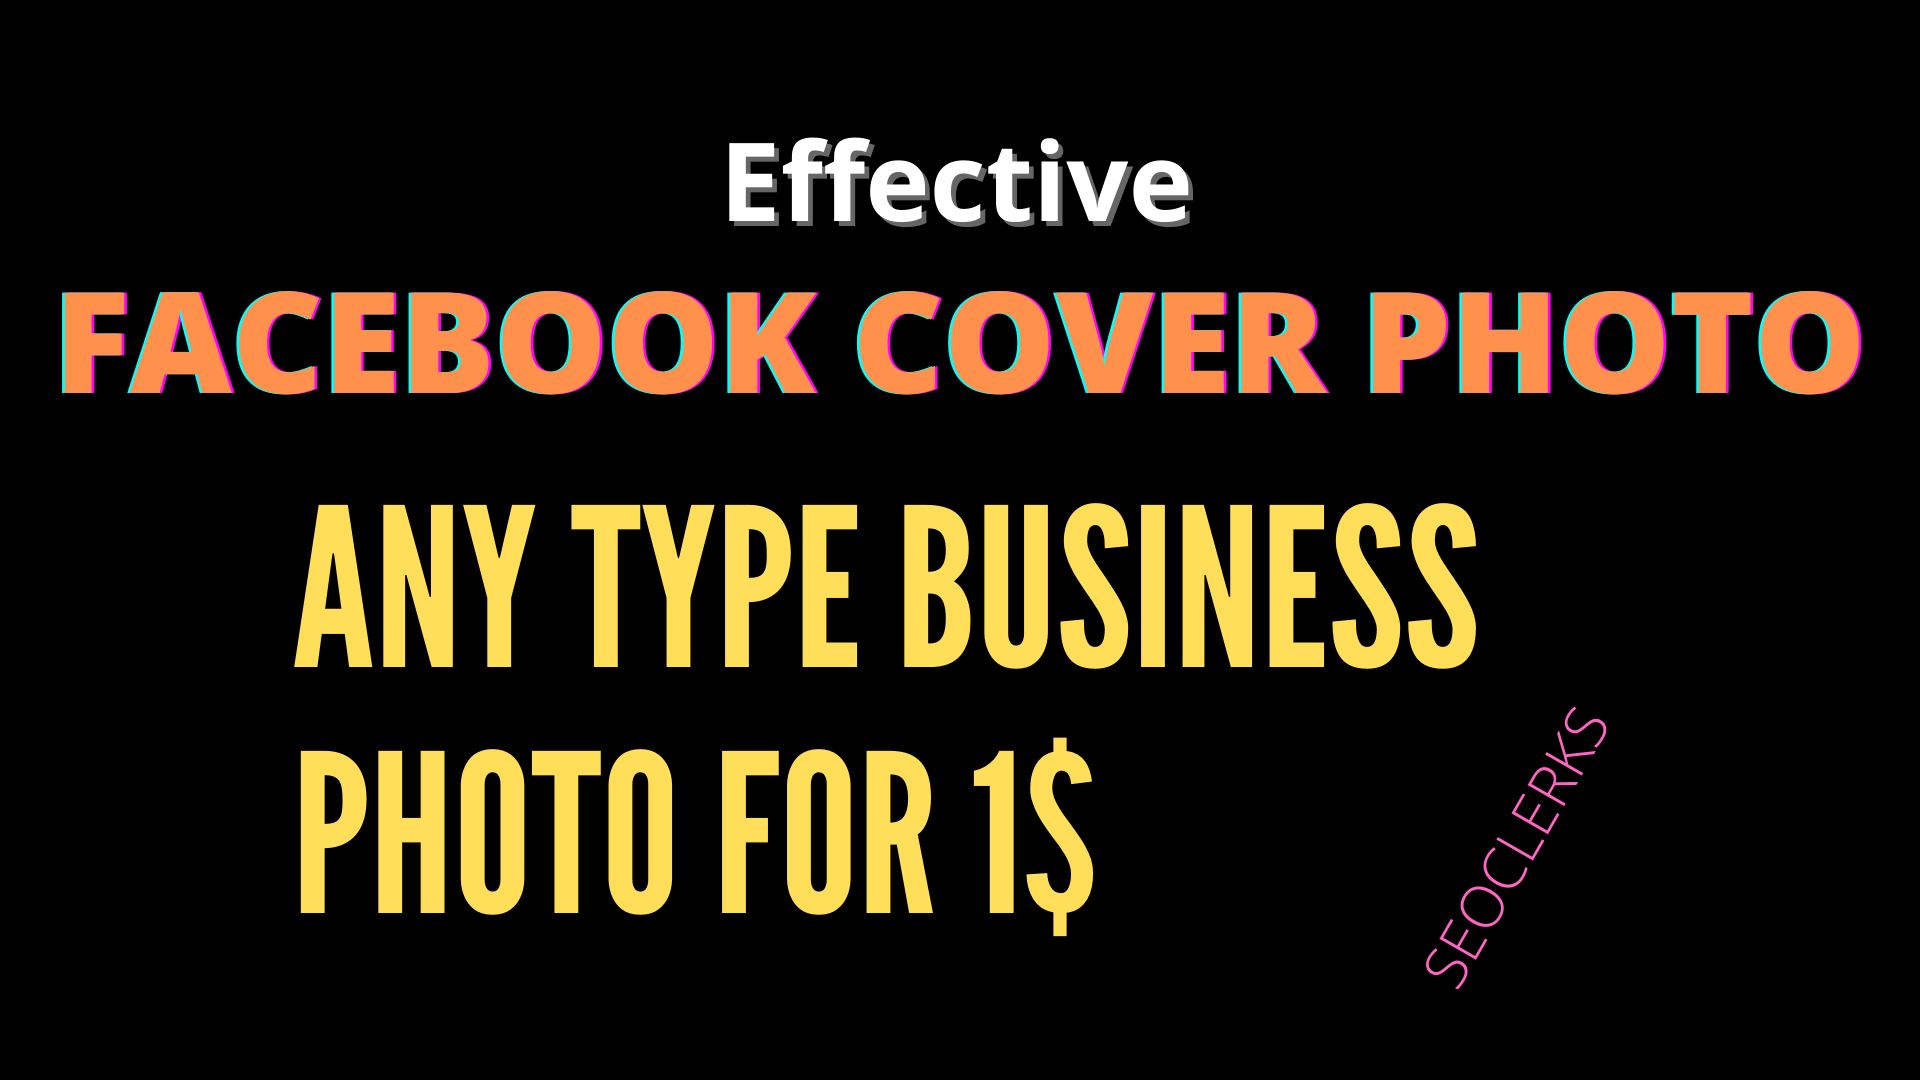 I will design a Creative Facebook Banner Image For Your Business Page